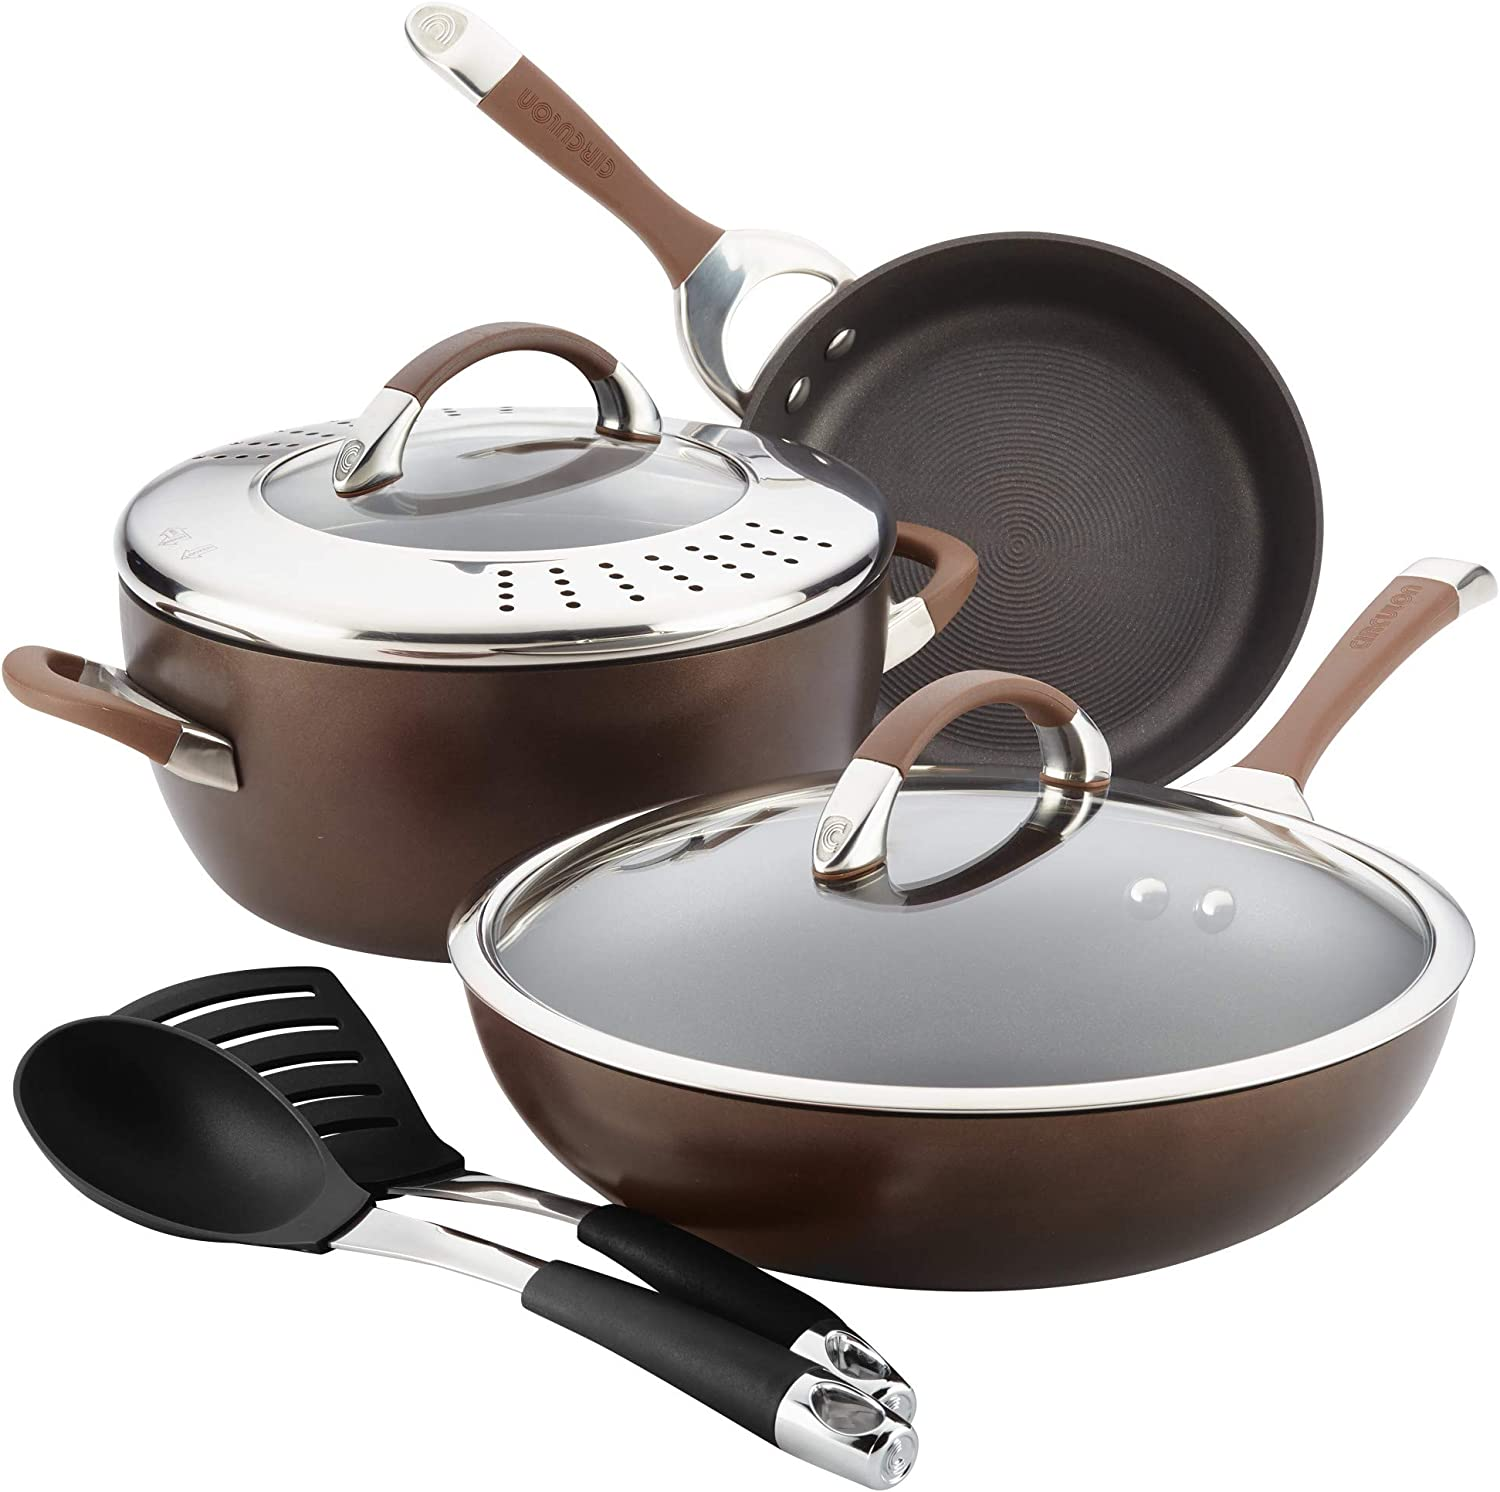 Circulon Symmetry Hard-Anodized Nonstick Cookware Set, 8-Piece, Chocolate